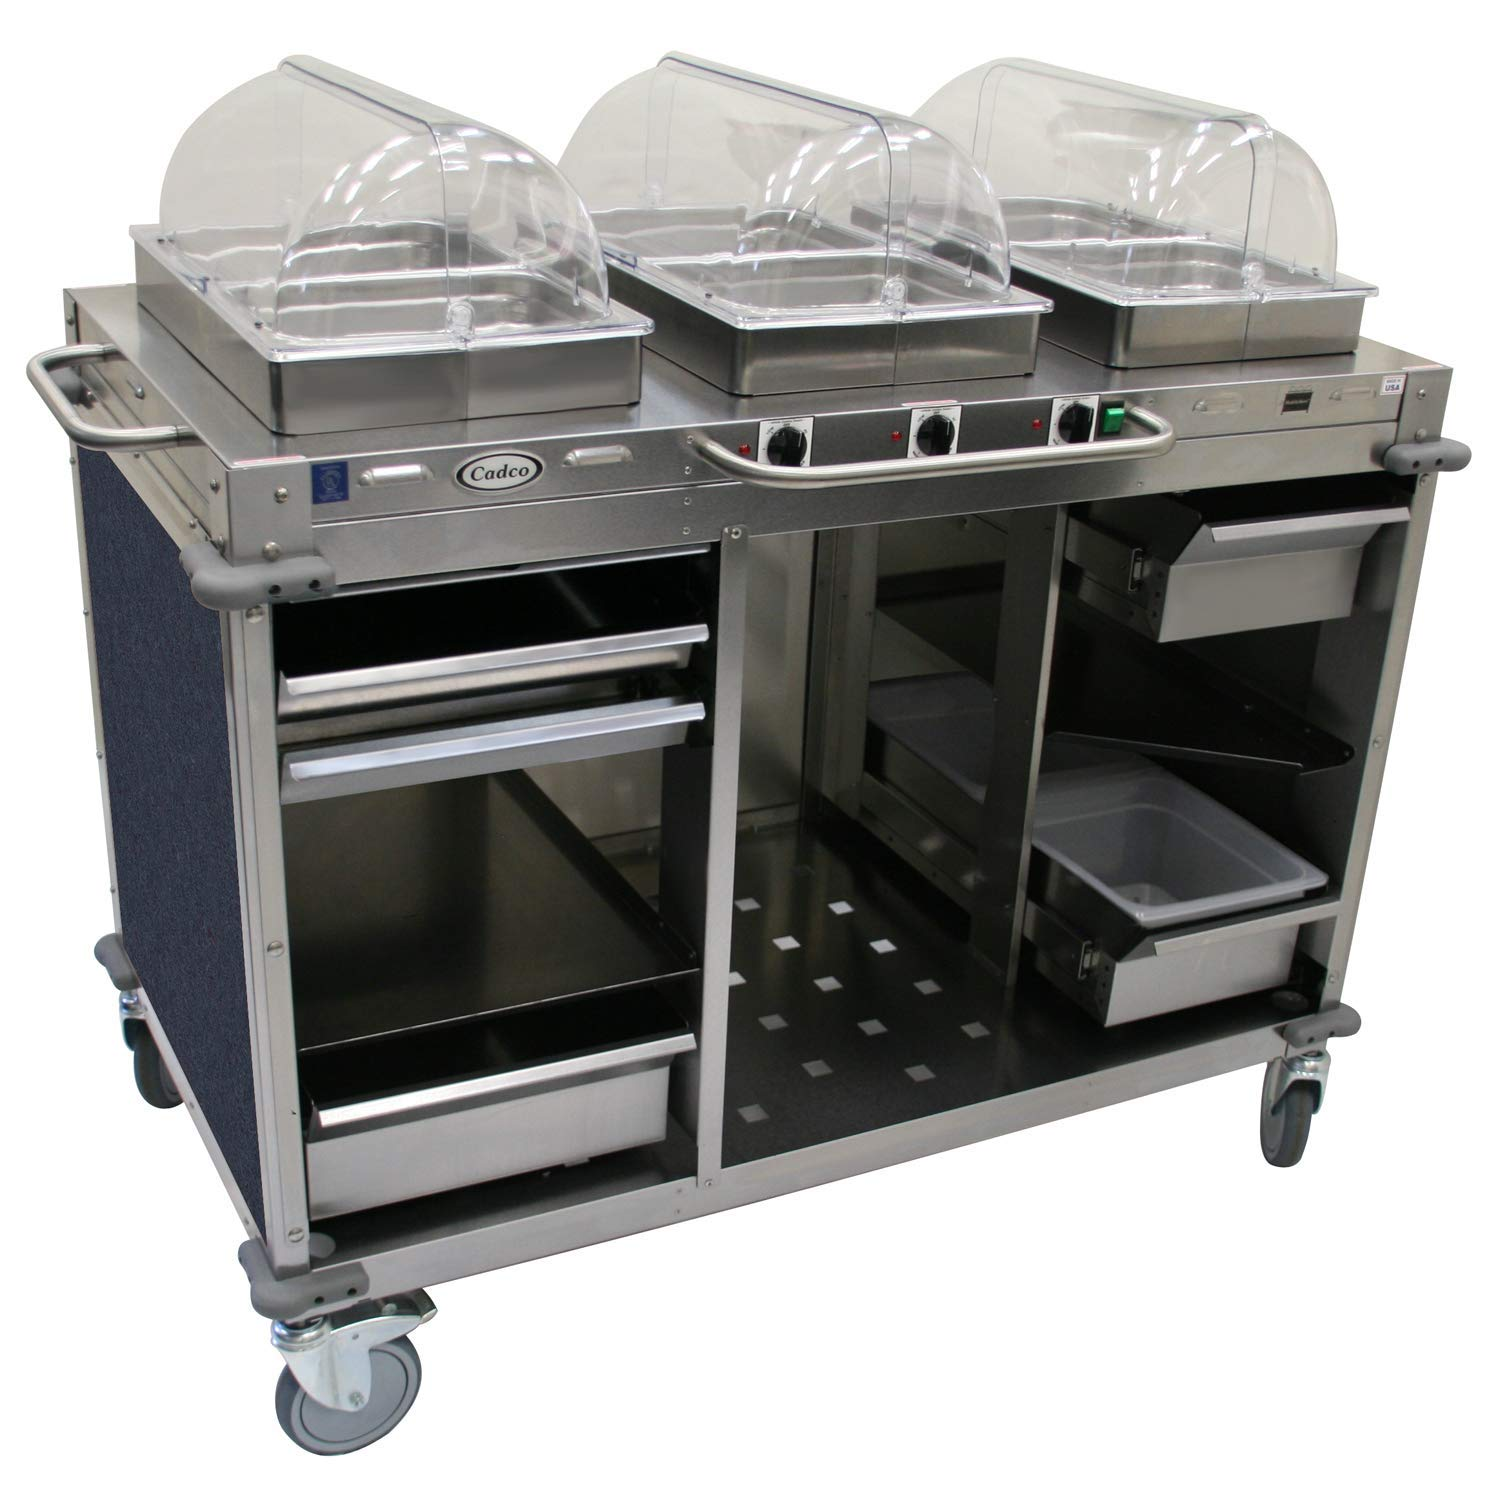 "Mobile Hot Buffet Cart Size: 49"" H x 55.5"" W x 28.75"" D, Color: Girona Falls Blue Marbled"